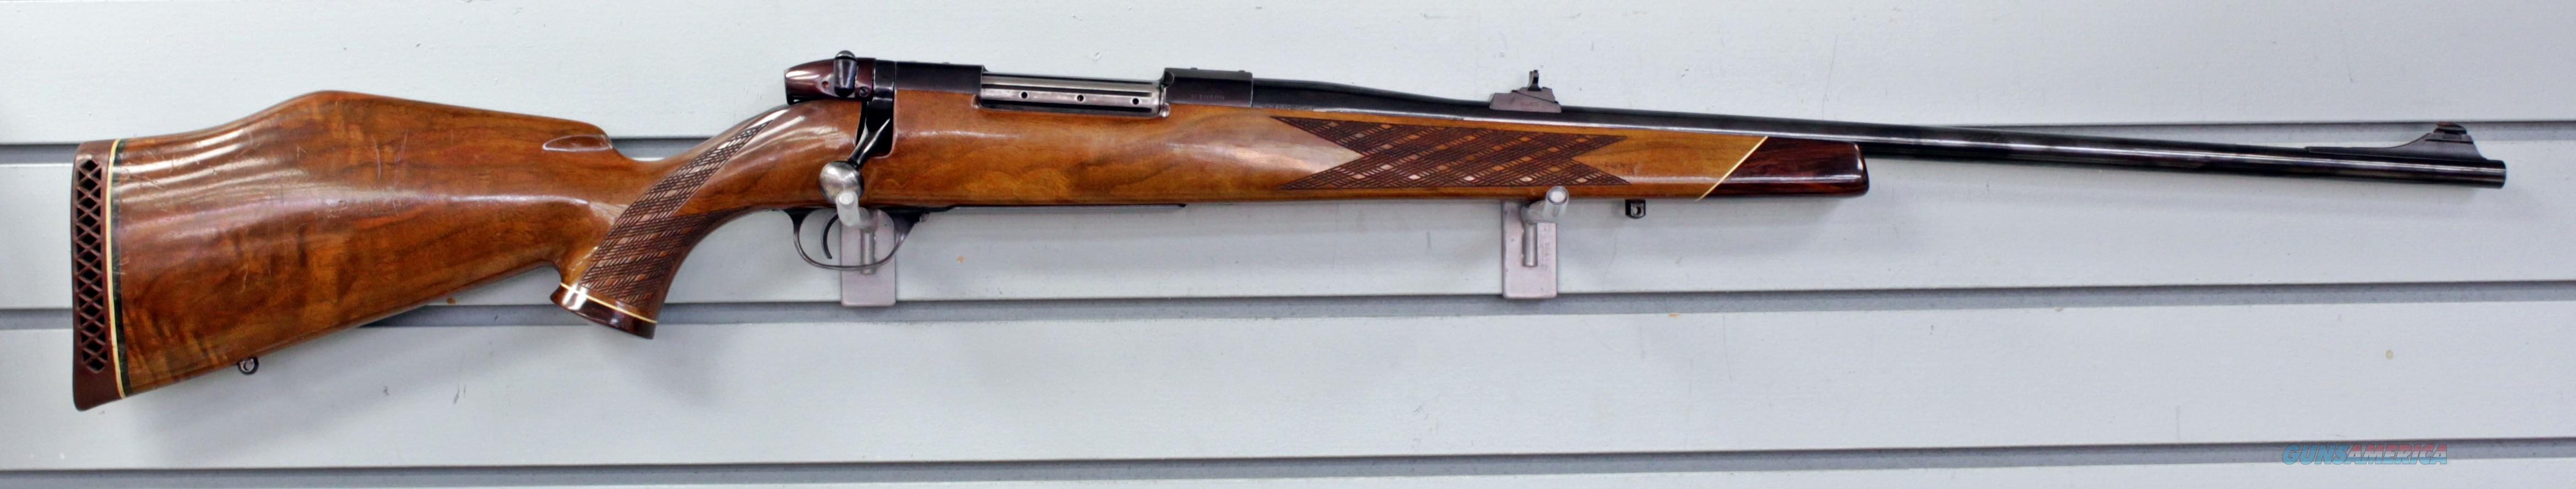 WEATHERBY MARK V 300 WBY MAG  Guns > Rifles > Weatherby Rifles > Sporting